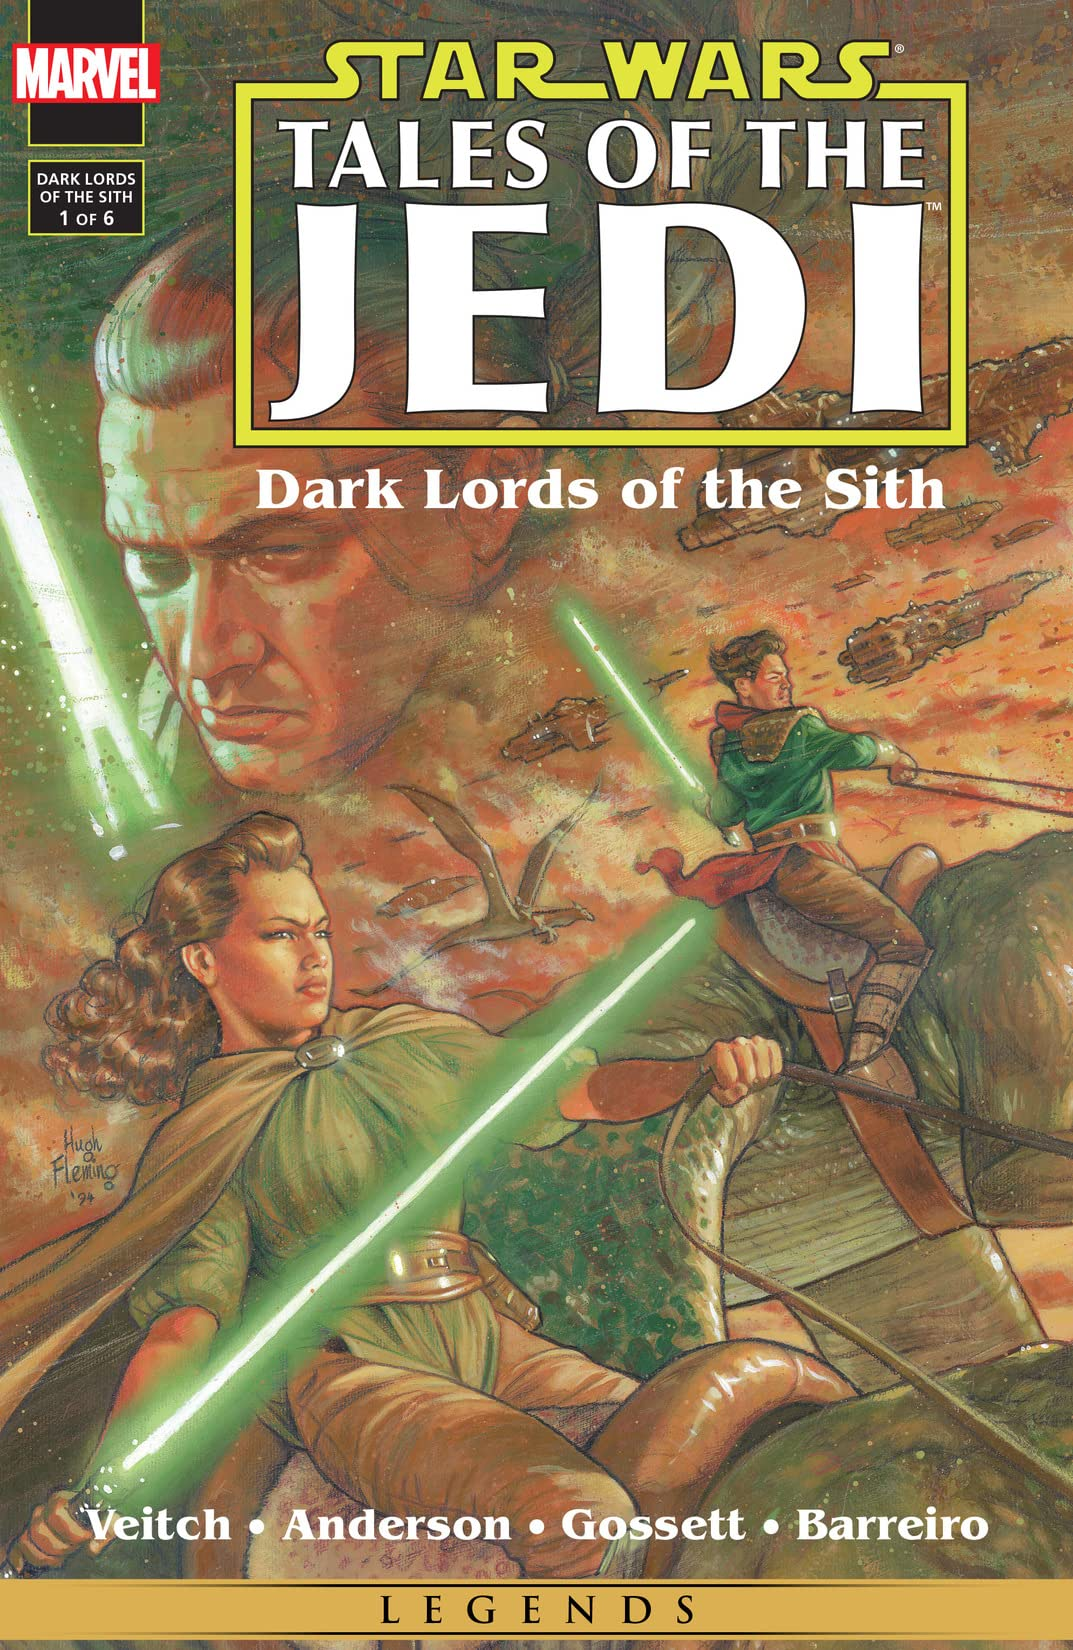 Star Wars: Tales of the Jedi - Dark Lords of the Sith (1994-1995) #1 (of 6)